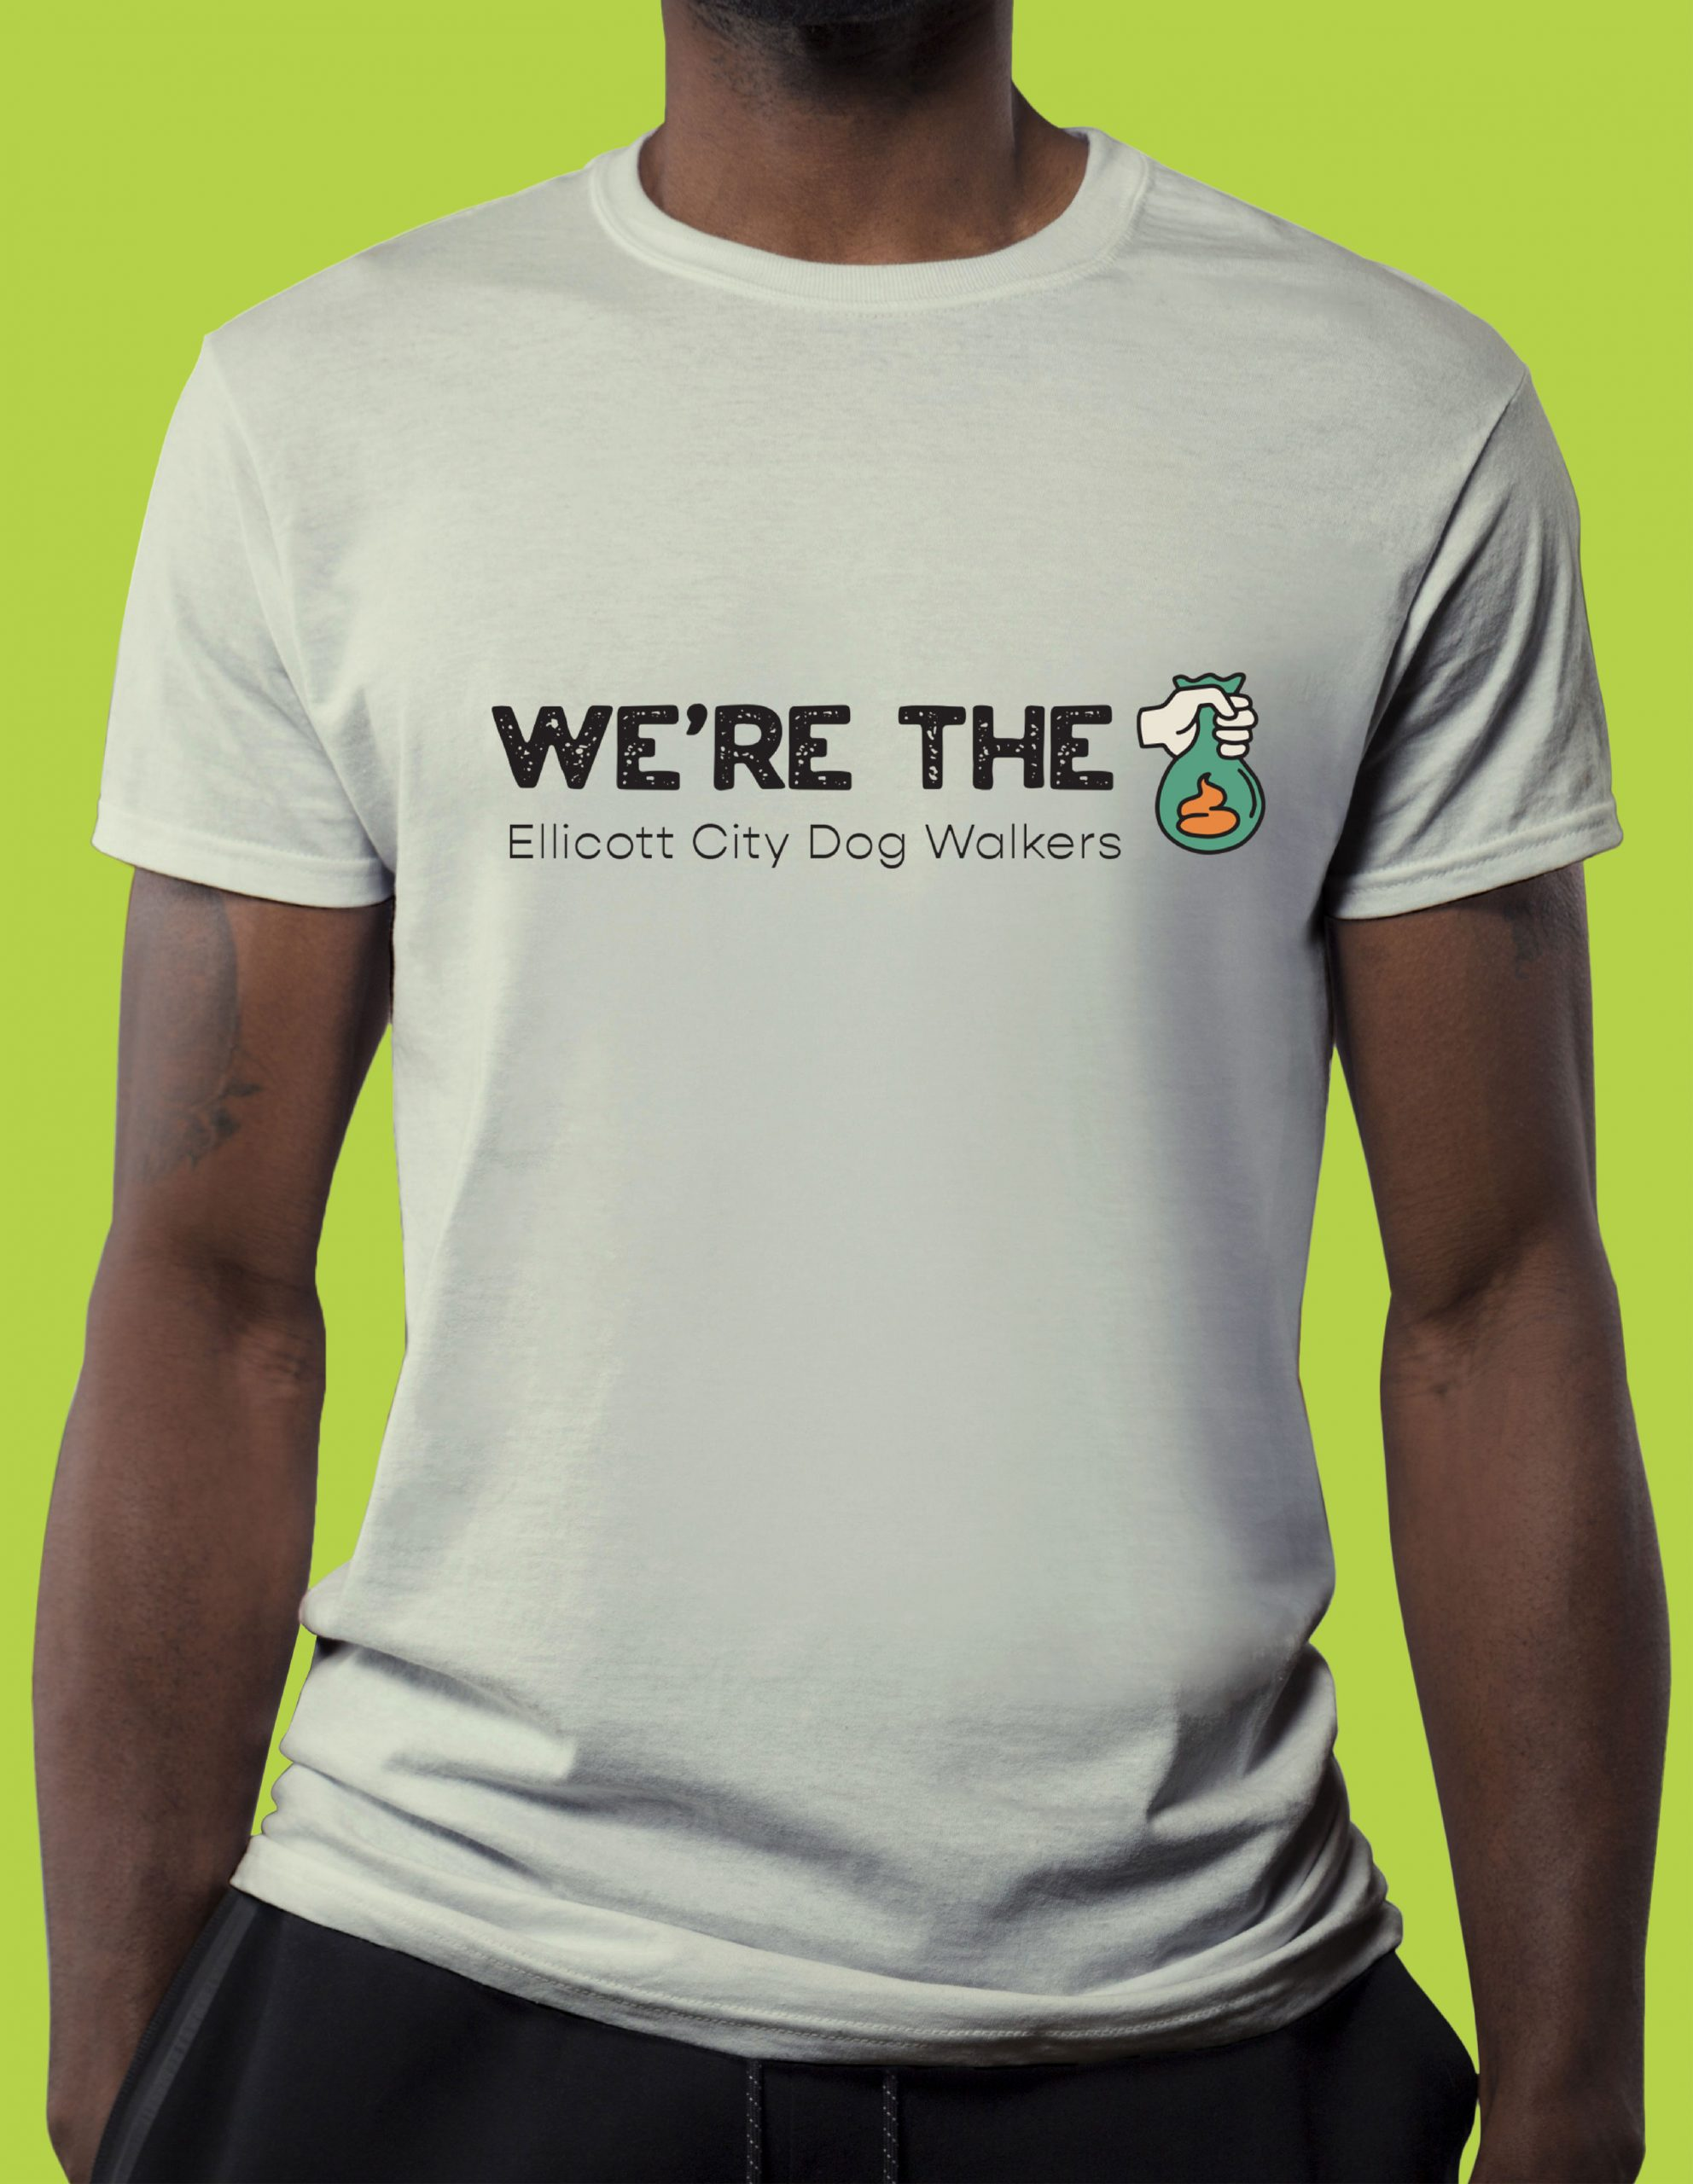 We're the Ellicott City Dog Walkers tee shirt